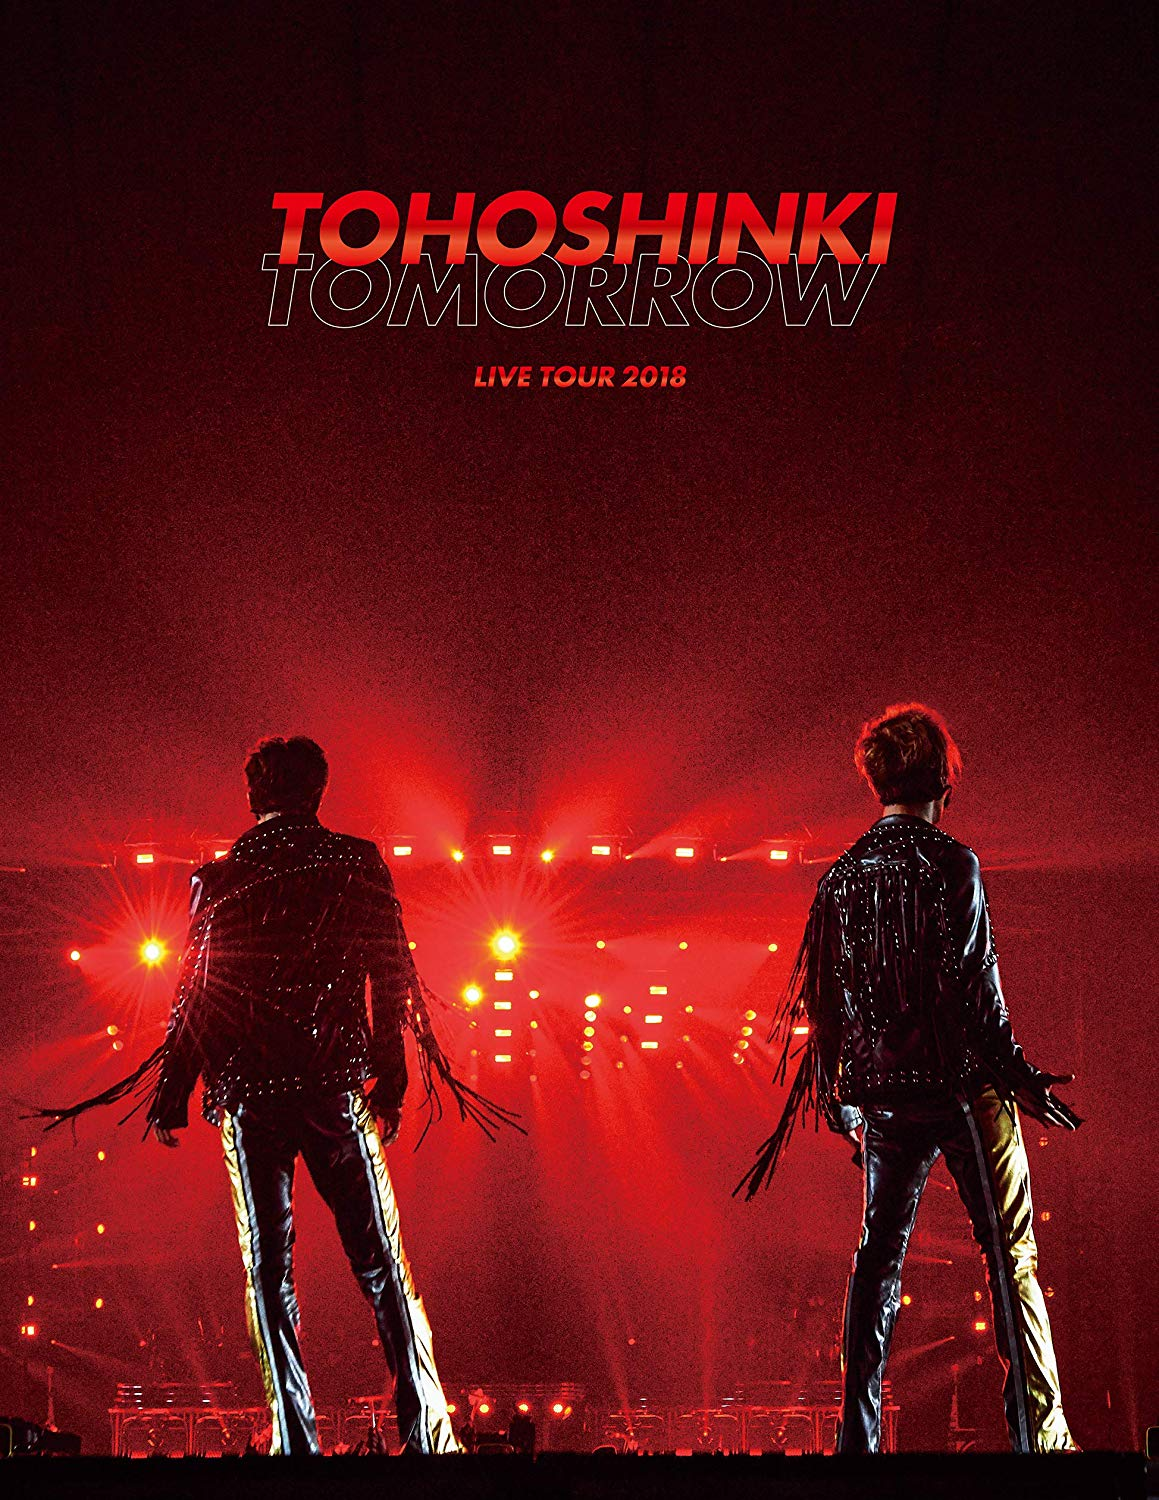 Tohoshinki/東方神起 LIVE TOUR 2018 ~TOMORROW~ [첫회한정반][Blu-ray]